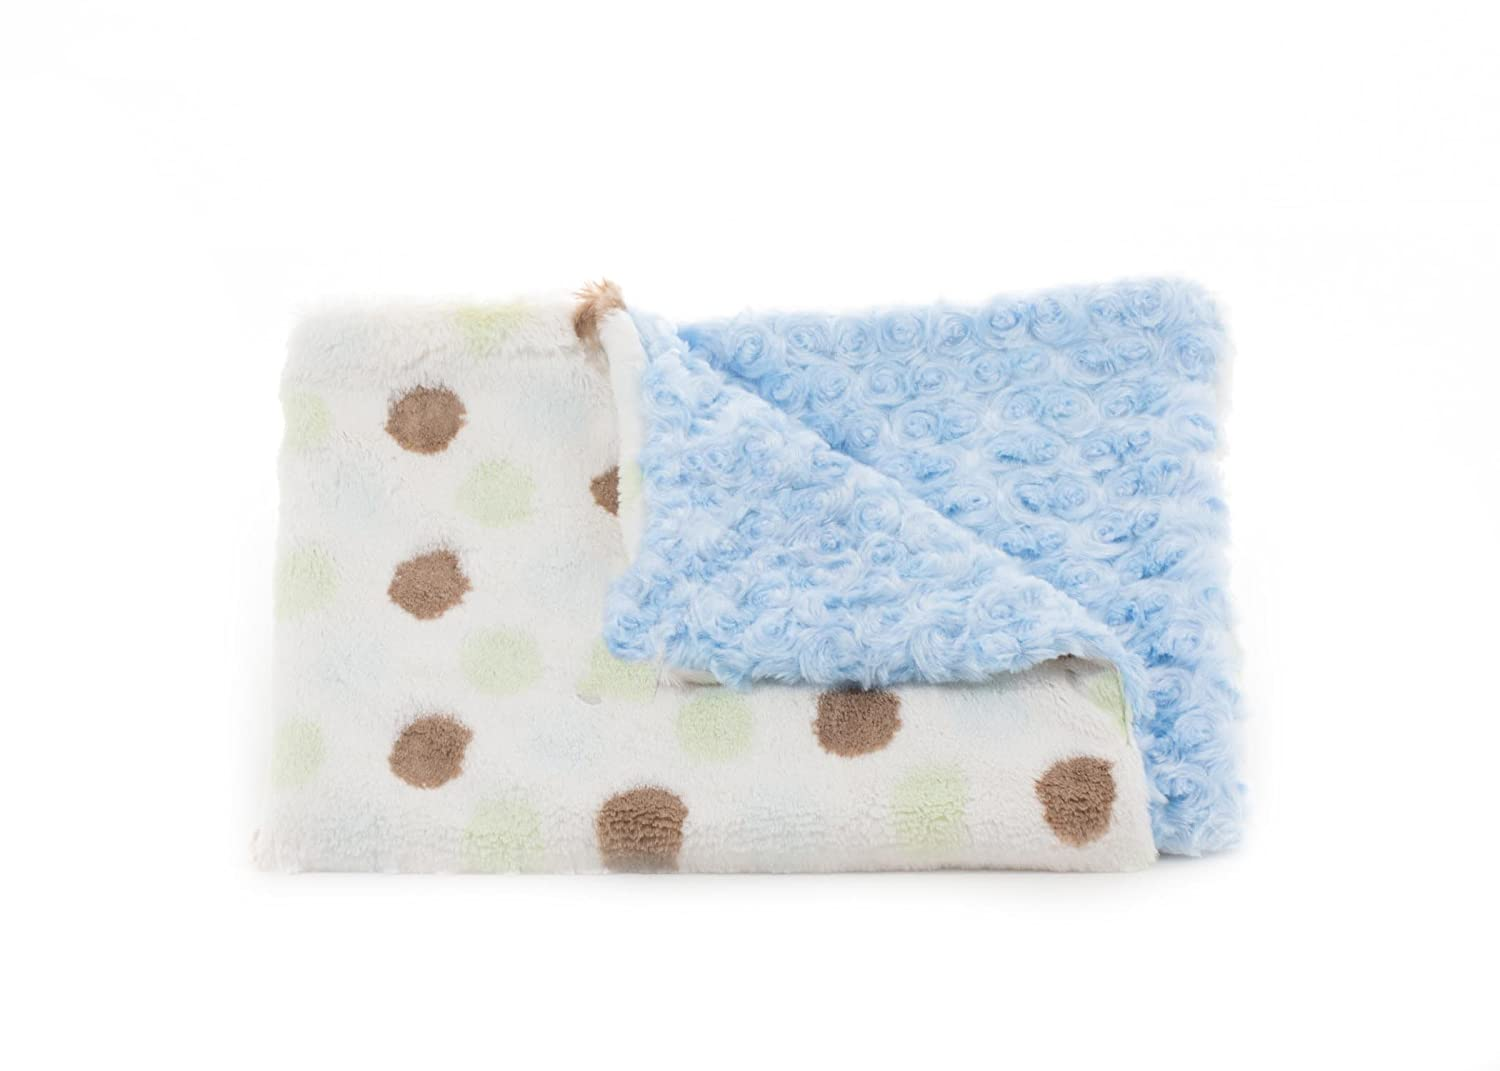 30 x 45 30 x 45 ababy 009243460633 Tourance Spumoni Dots Toddler Blanket with Rosebud Sky Blue